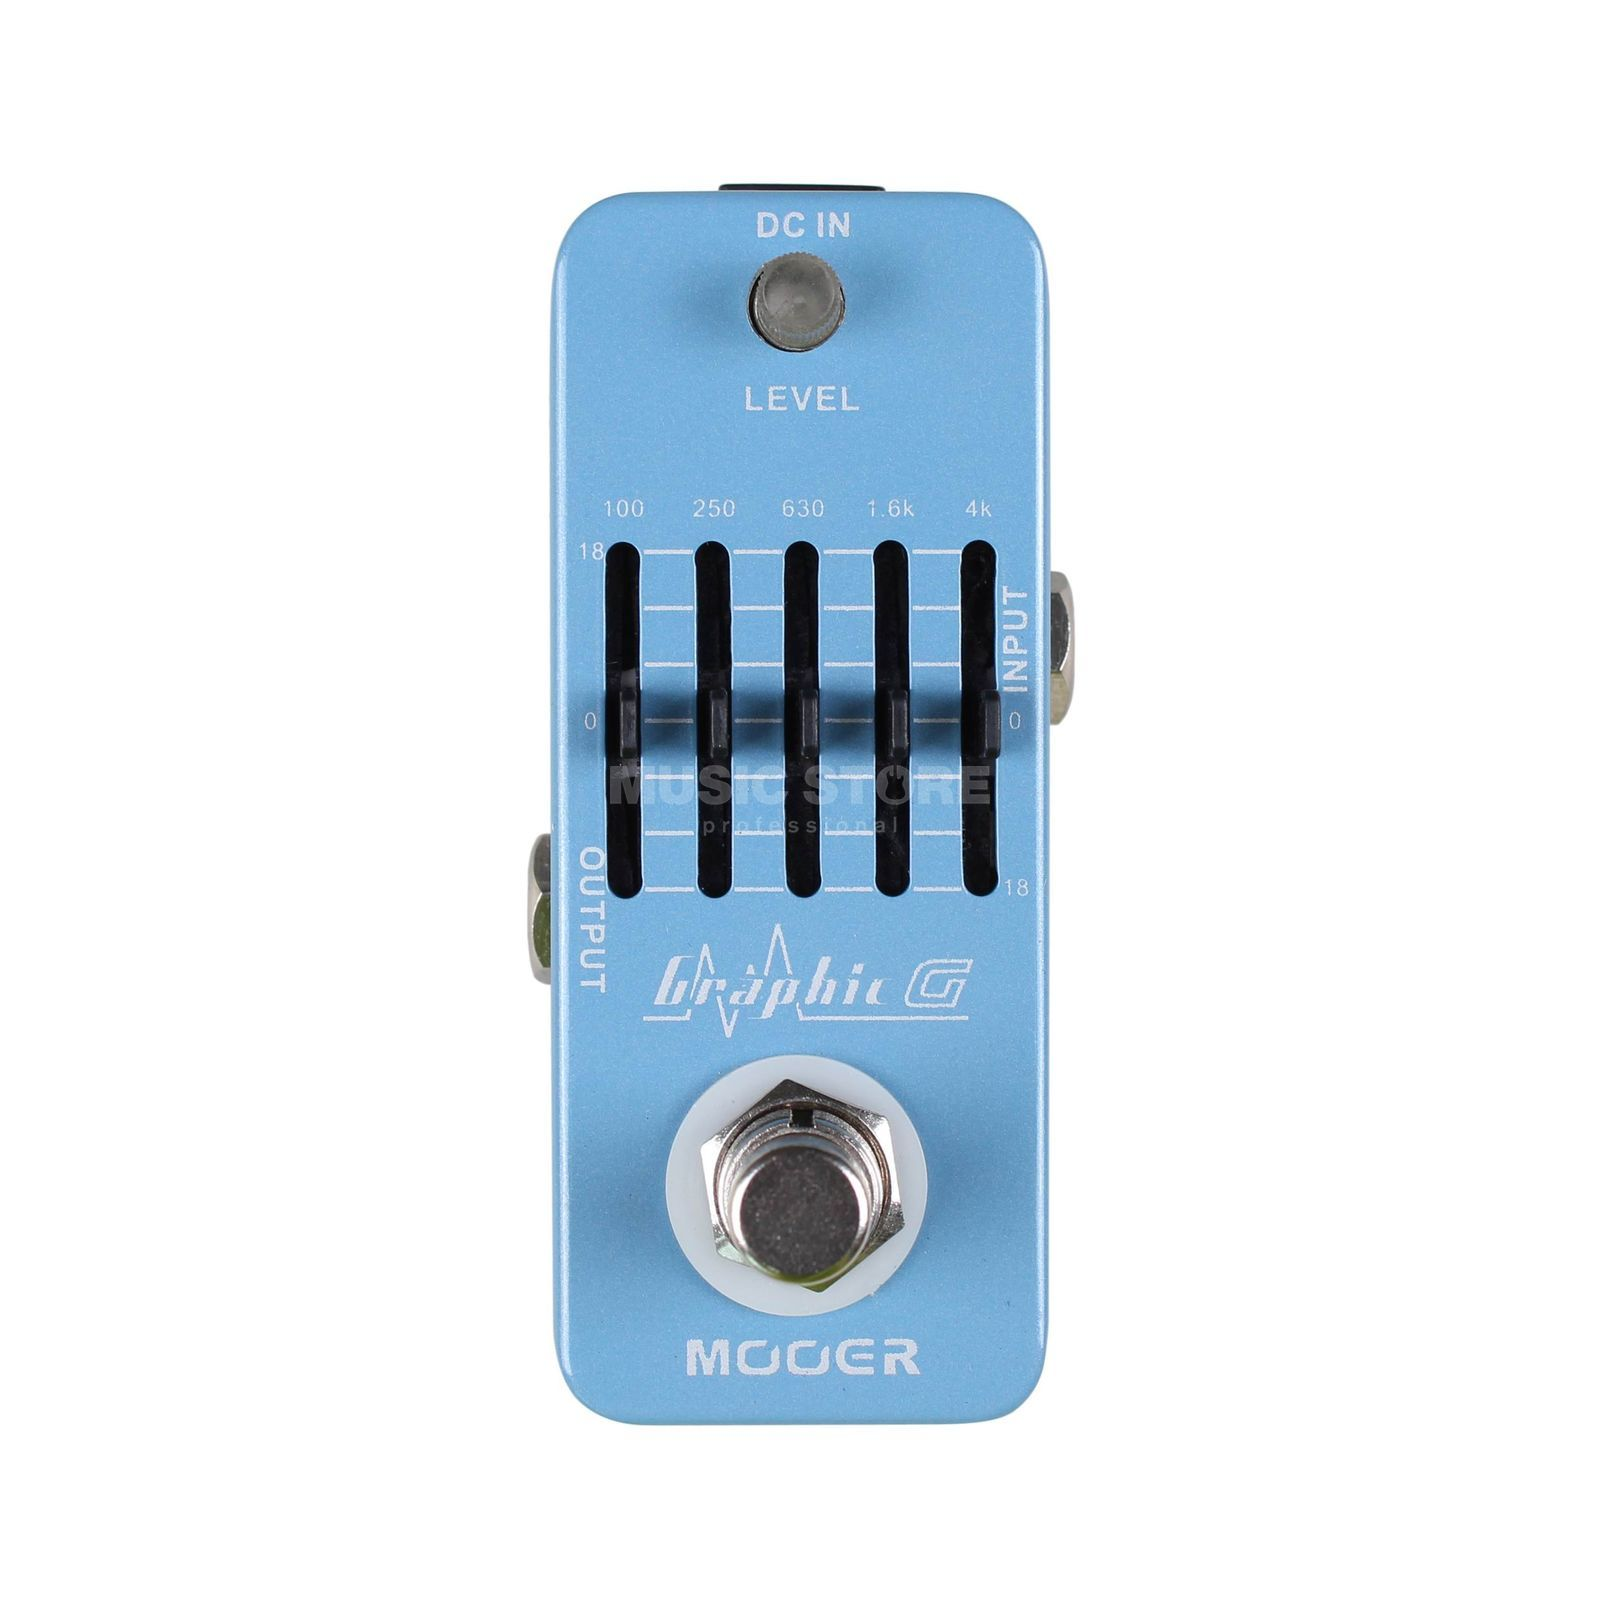 Mooer Audio Graphic G 5-Band Guitar Equalizer Produktbillede